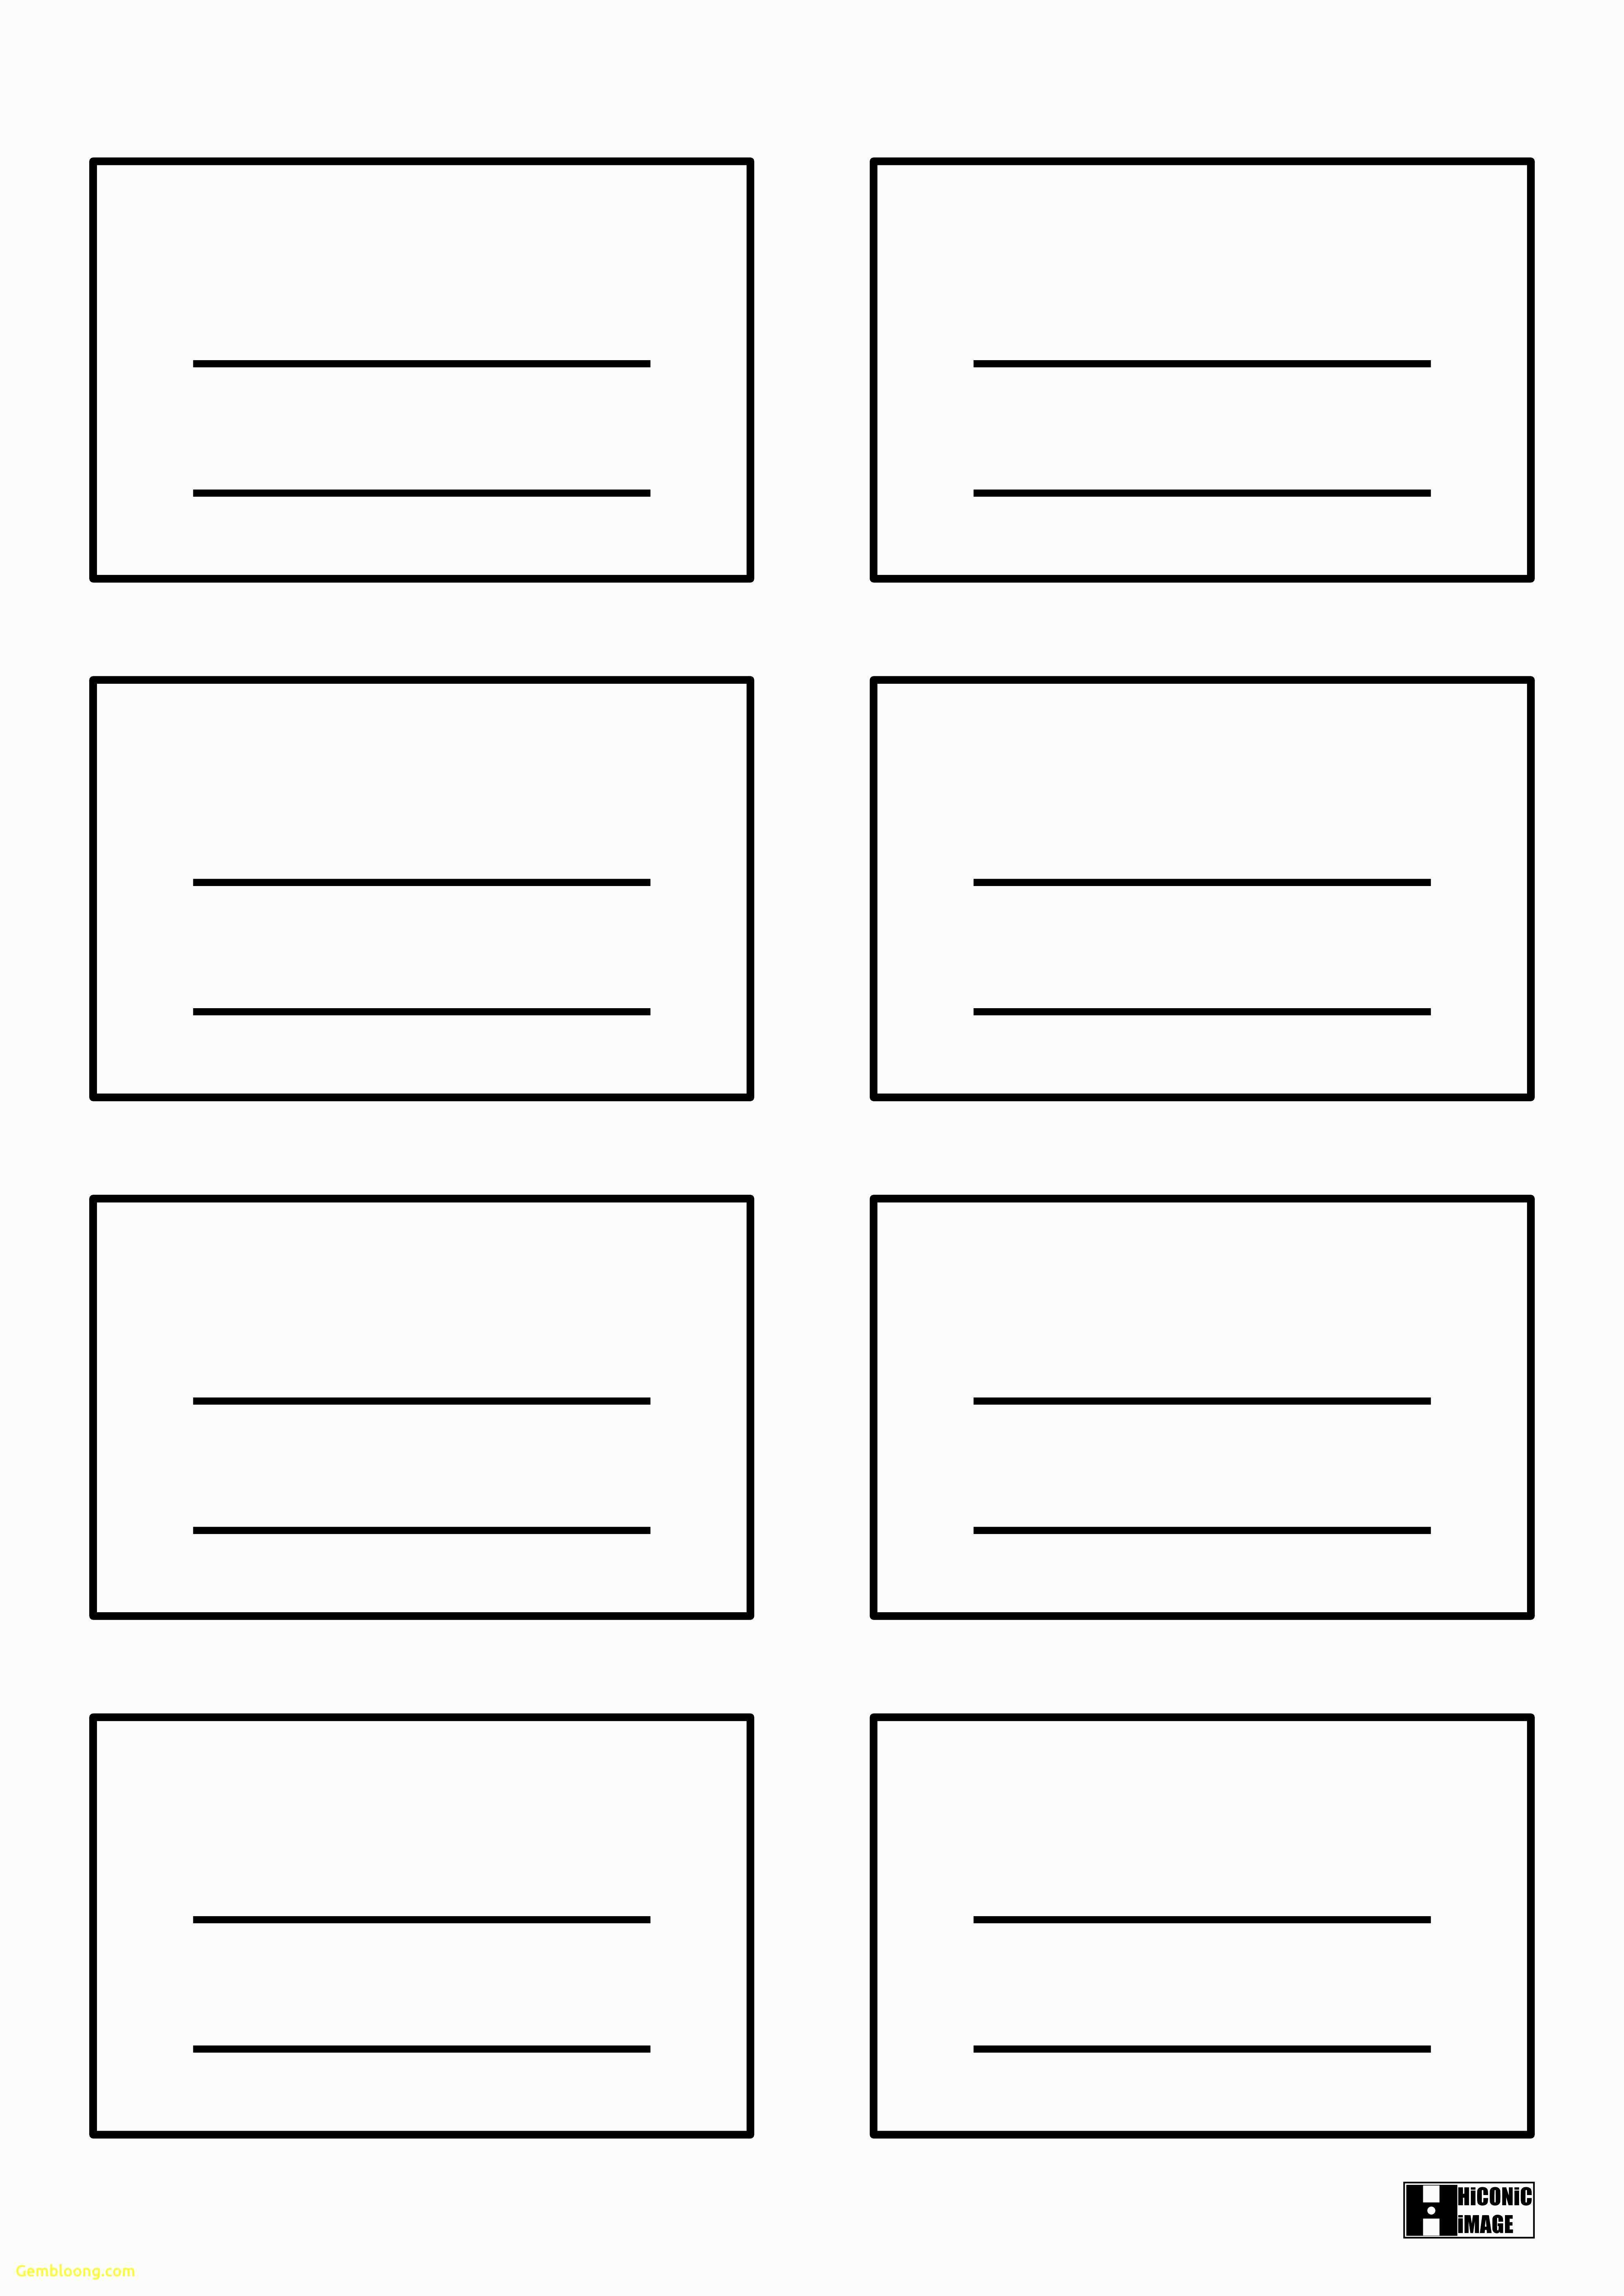 21 Customize Our Free Printable 21X21 Index Card Template in Within 4x6 Photo Card Template Free